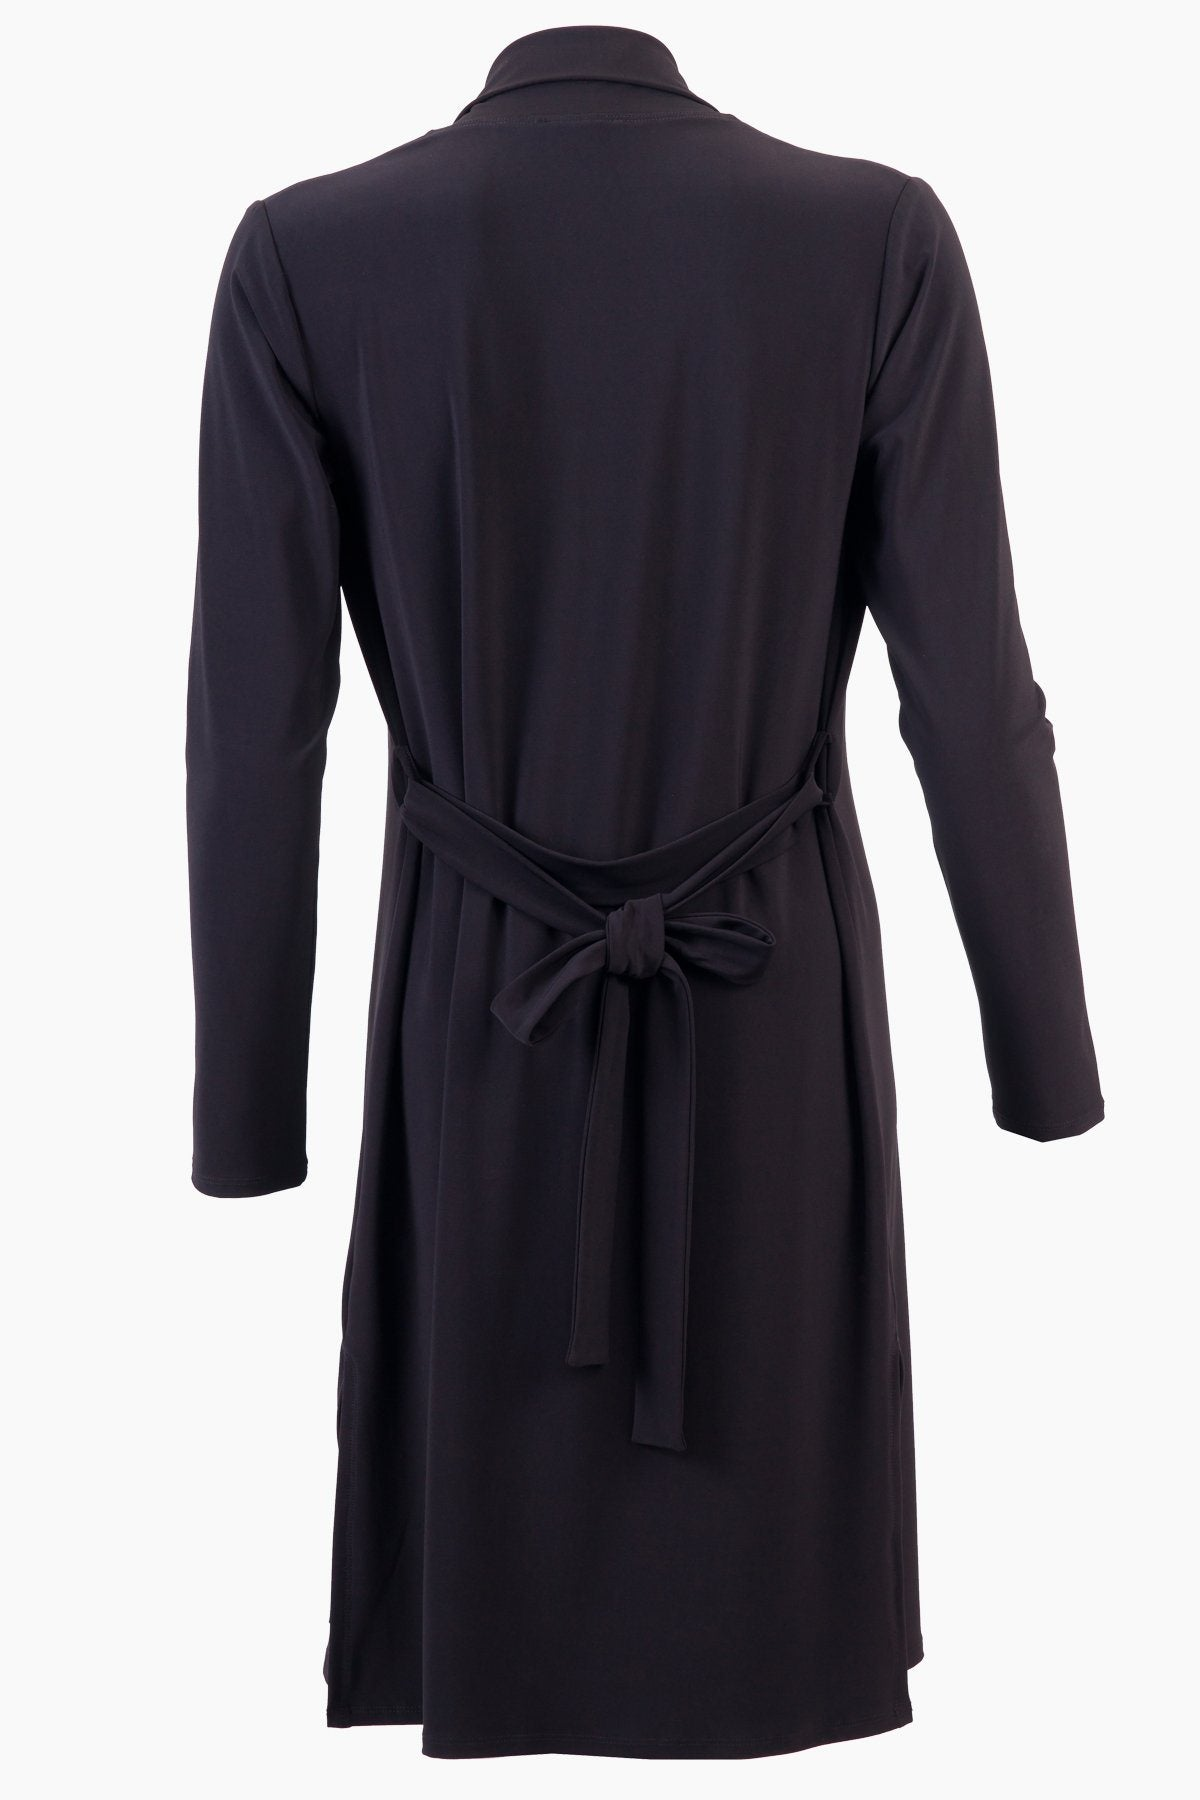 High Neck Long Cardigan with Belt black